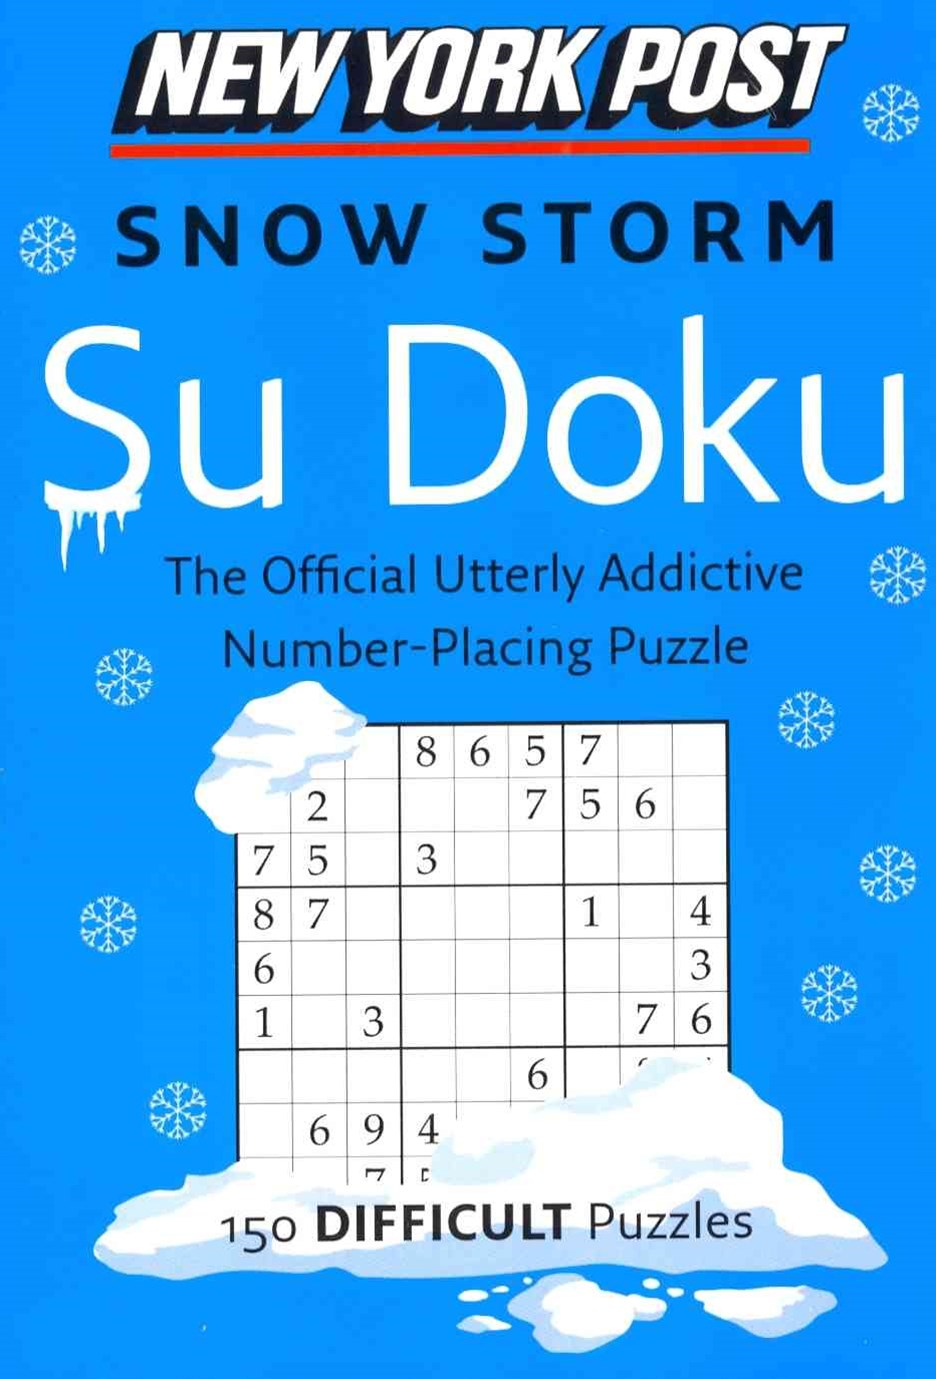 New York Post Snow Storm Su Doku (Difficult)